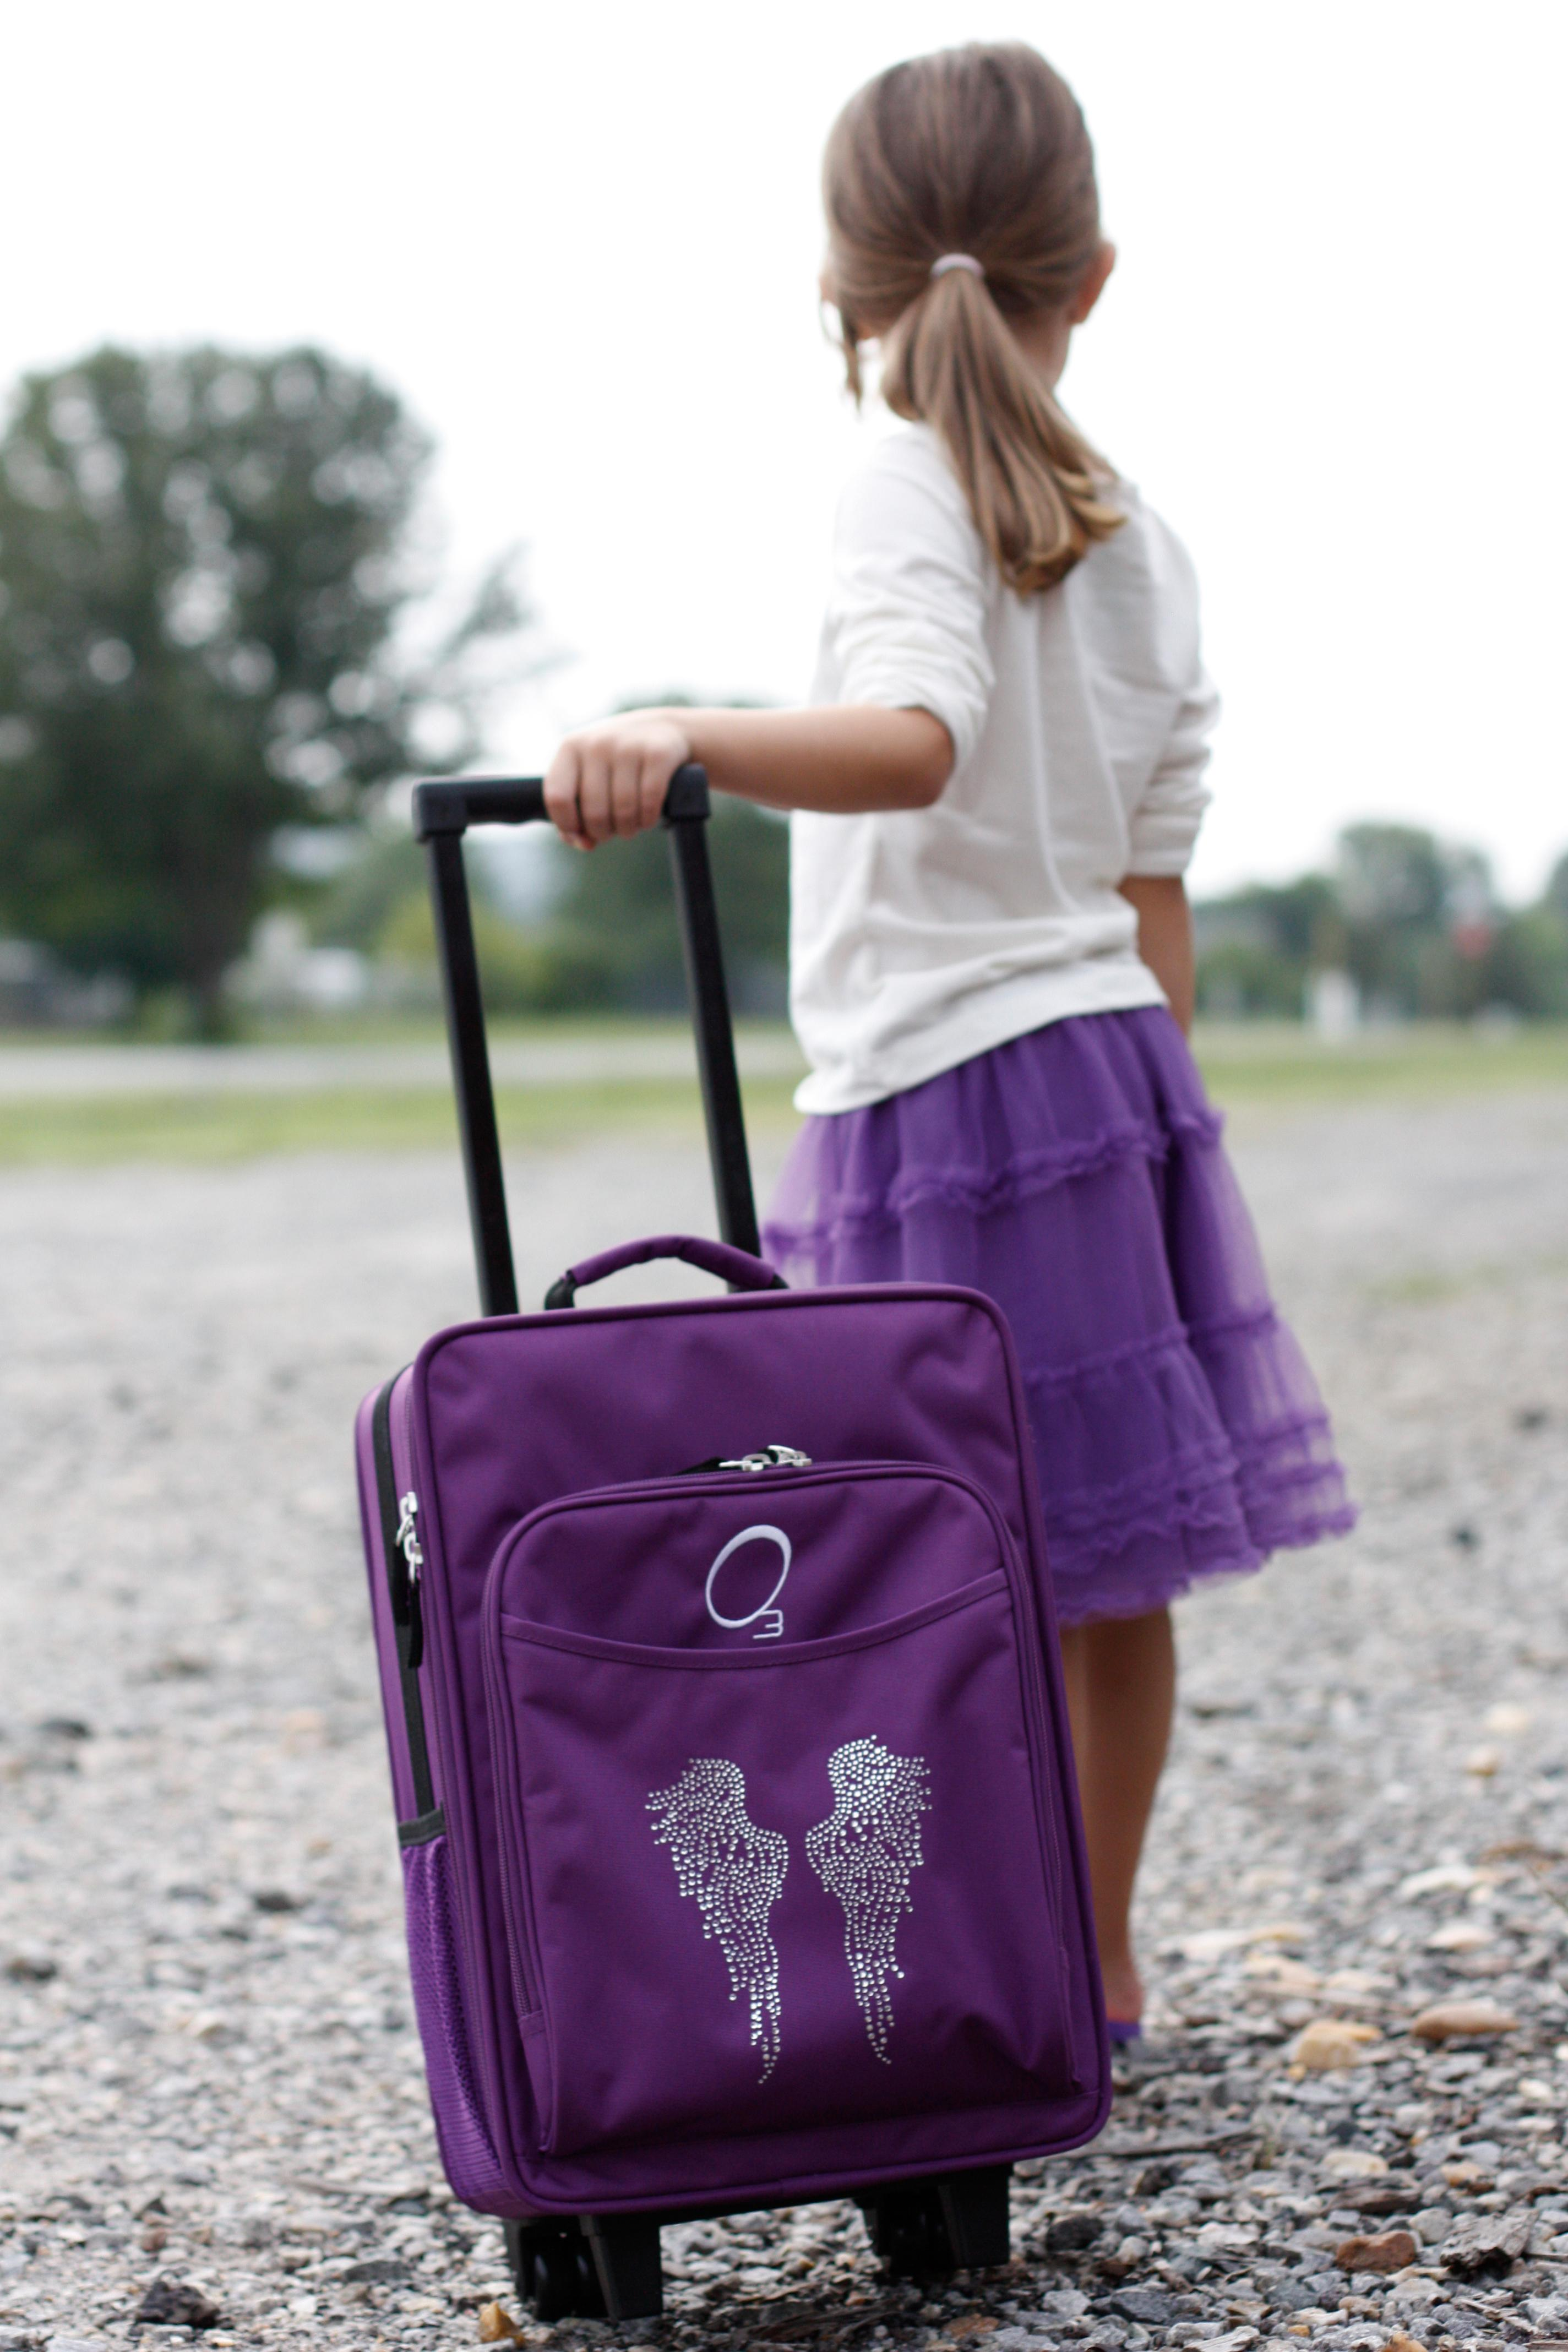 Childrens Luggage Rolling